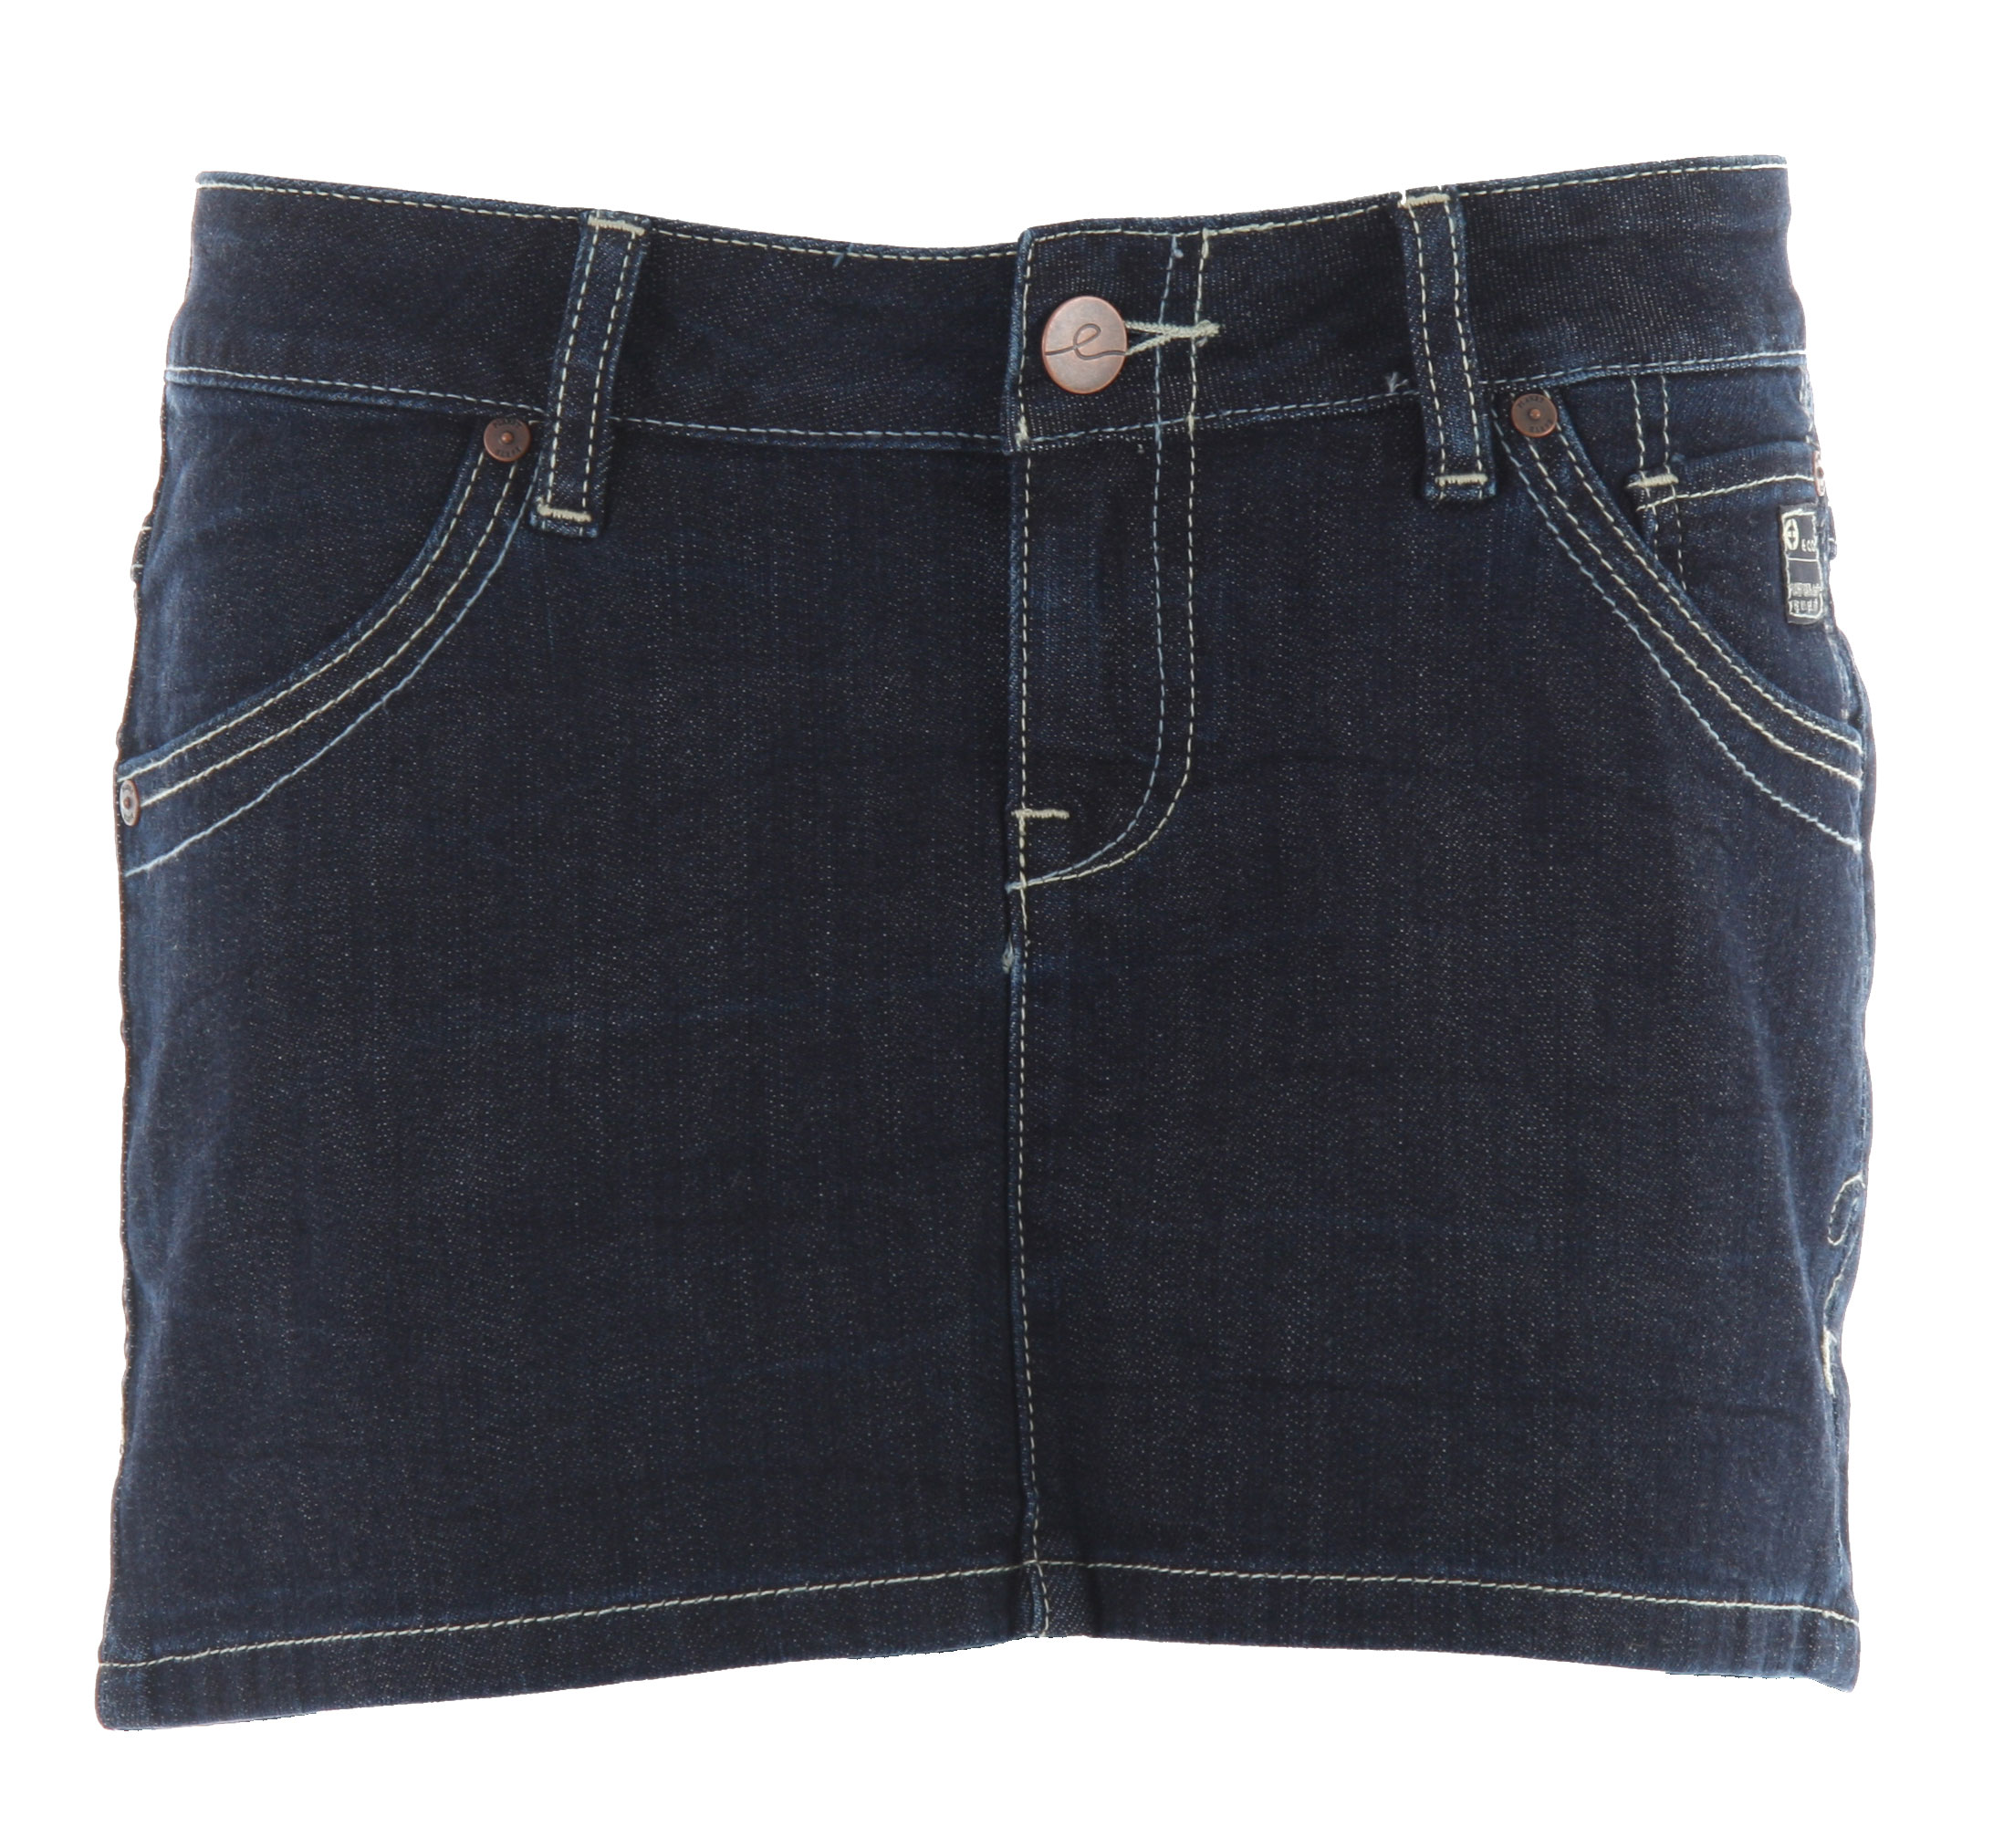 Key Features of the Planet Earth Jean Mini Skirt: Zip Fly Button Closure 20% Organic Cotton/78% Cotton/2% Spandex - $20.95